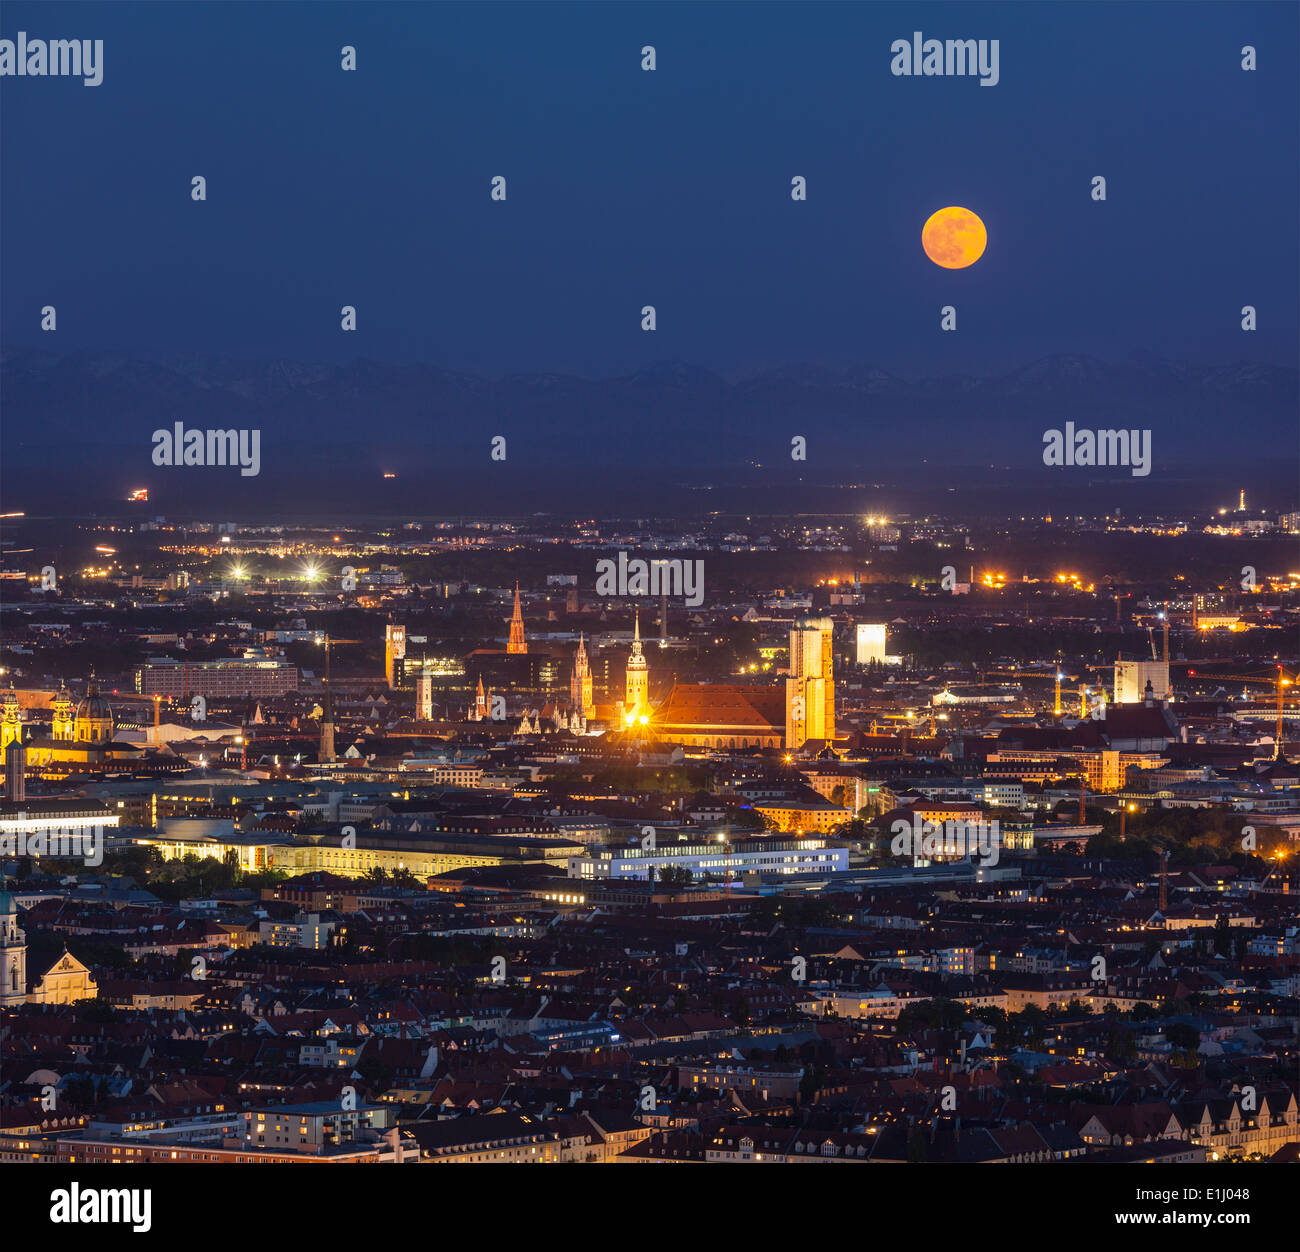 Night aerial view of Munich from Olympiaturm (Olympic Tower). Munich, Bavaria, Germany - Stock Image